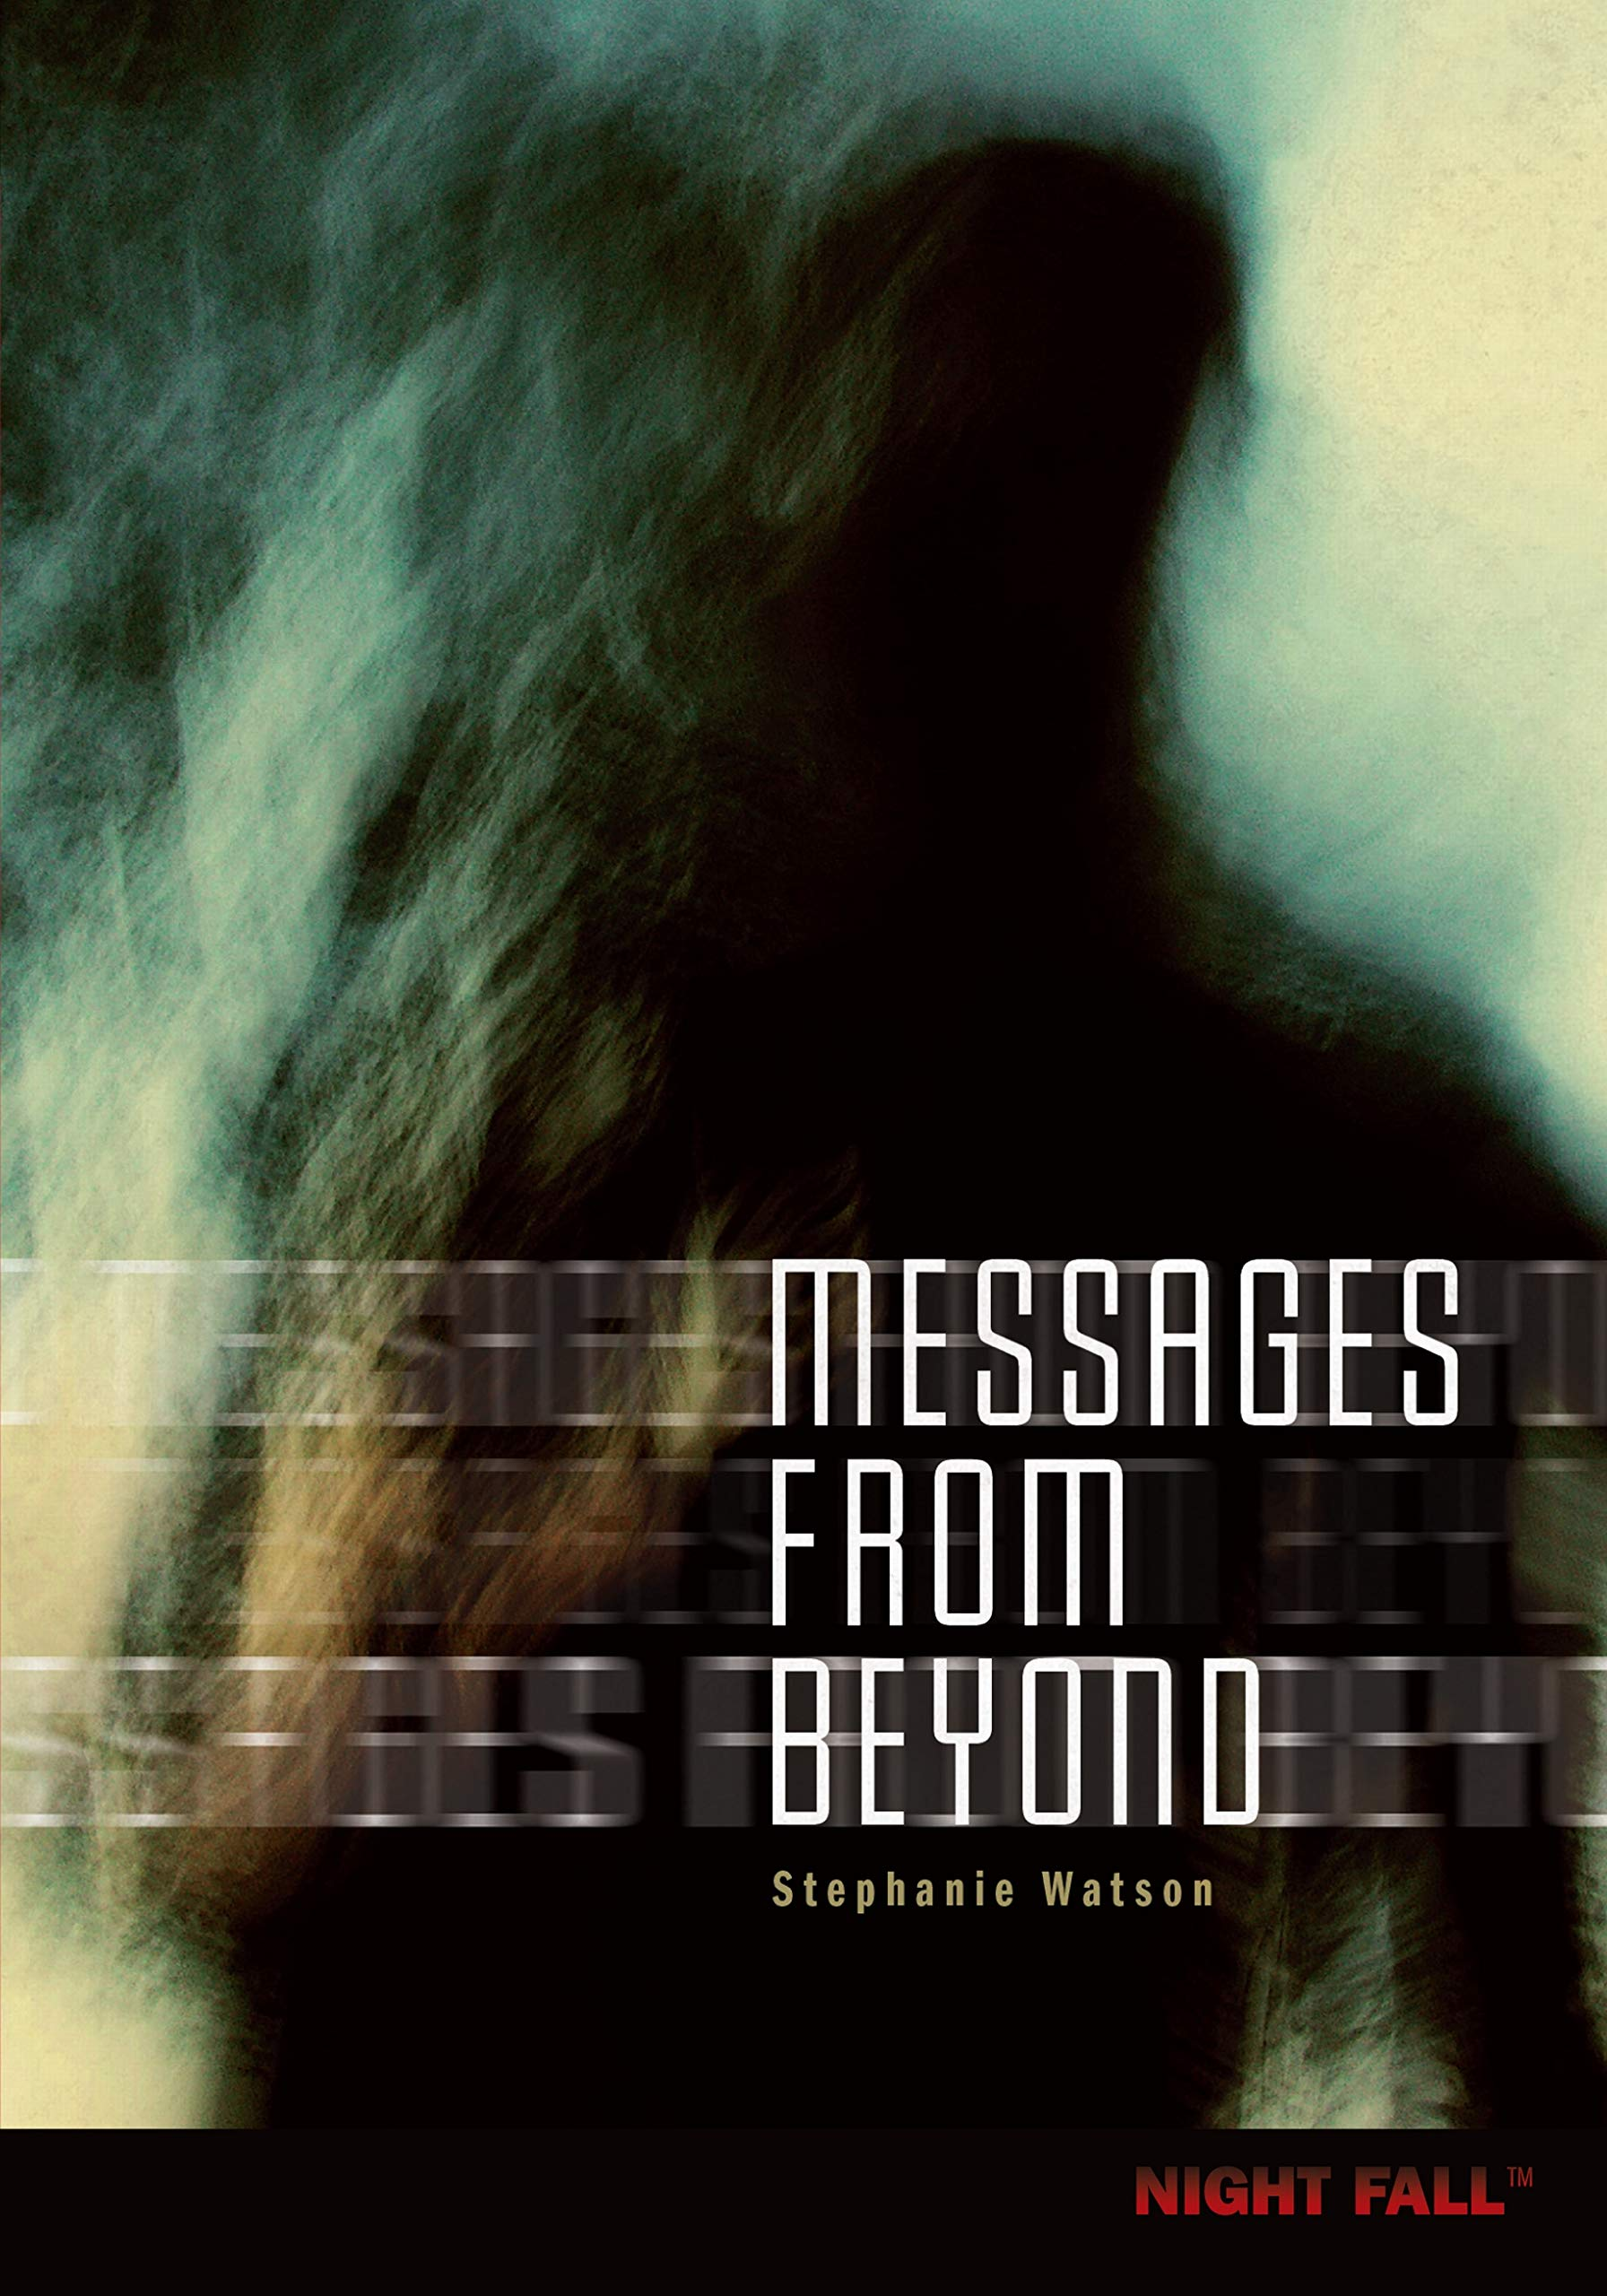 Download Messages from Beyond (Night Fall) ebook